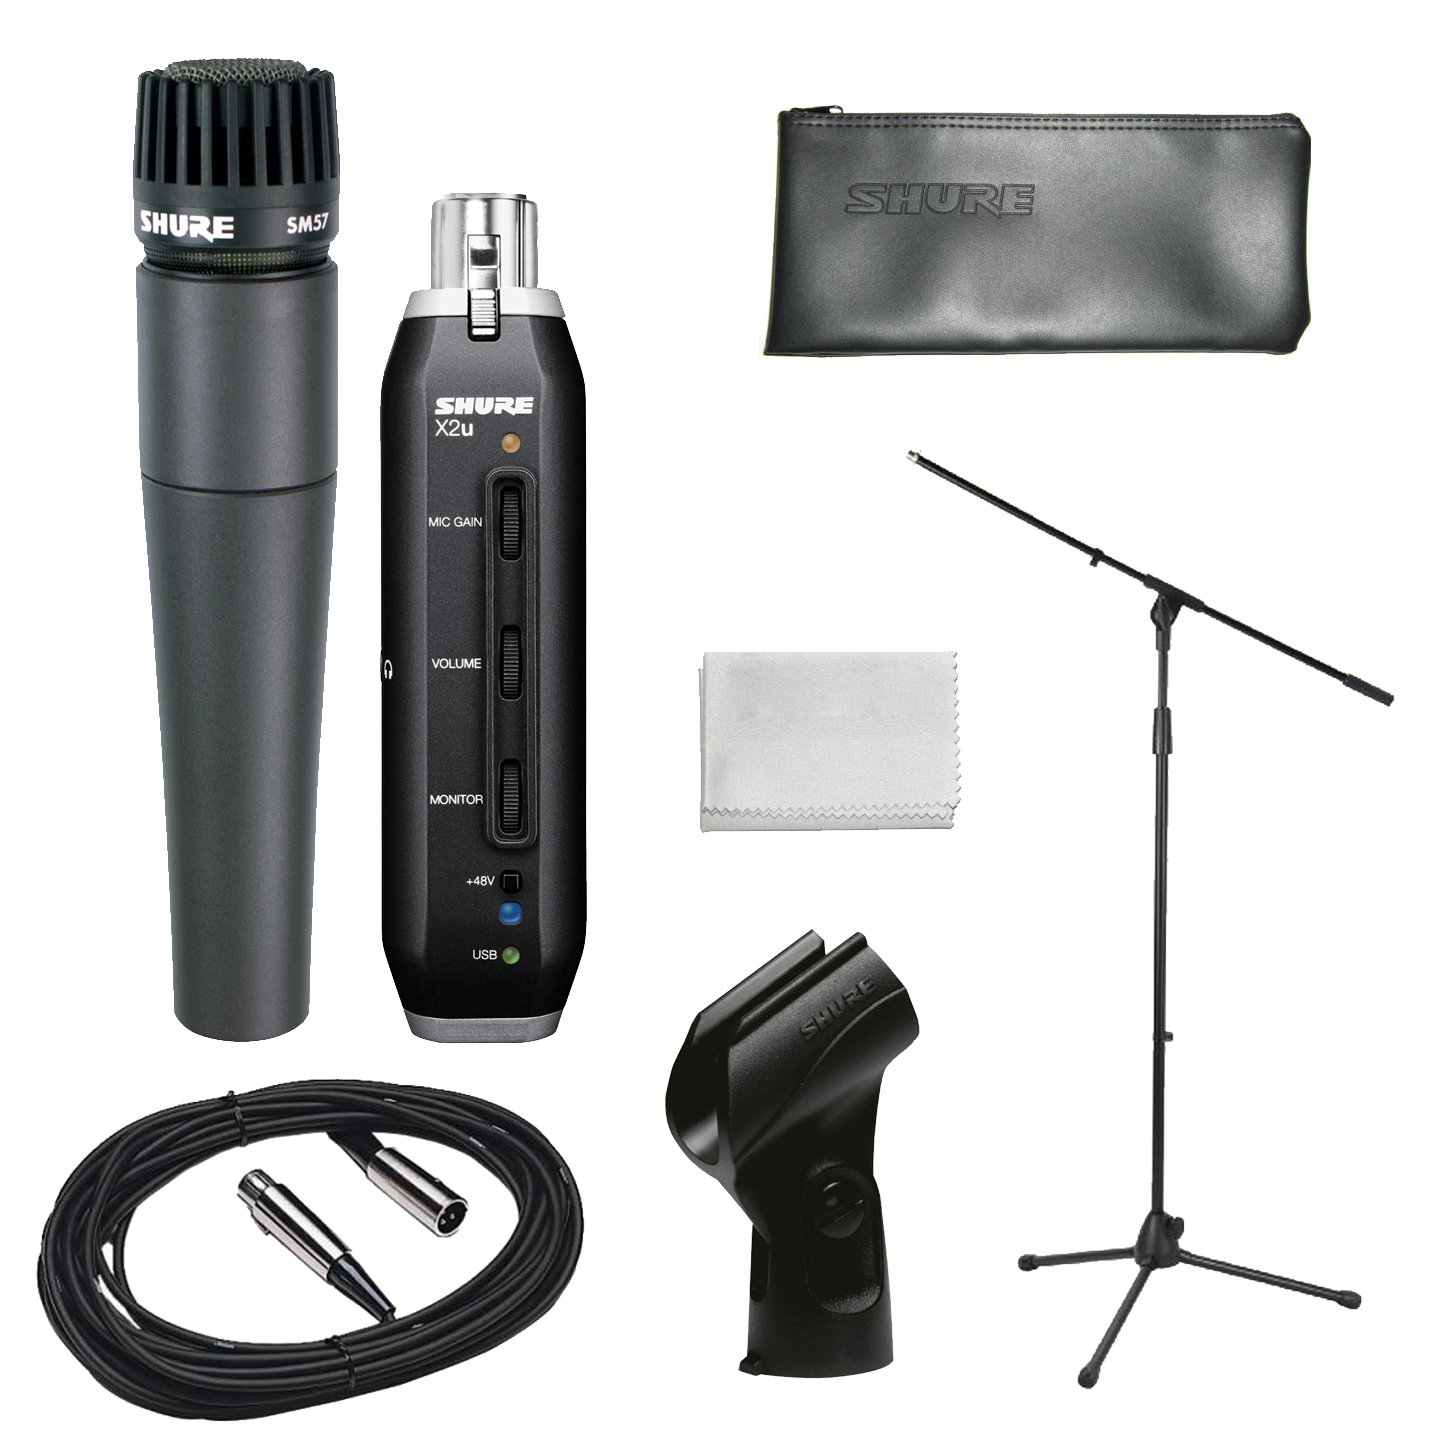 Shure Home Recording Studio Start-up Kit With Shure SM57 Microphone, Shure  X2U XLR-to-USB Audio Interface, 20-Foot XLR Cable, Boom Stand, Windscreen